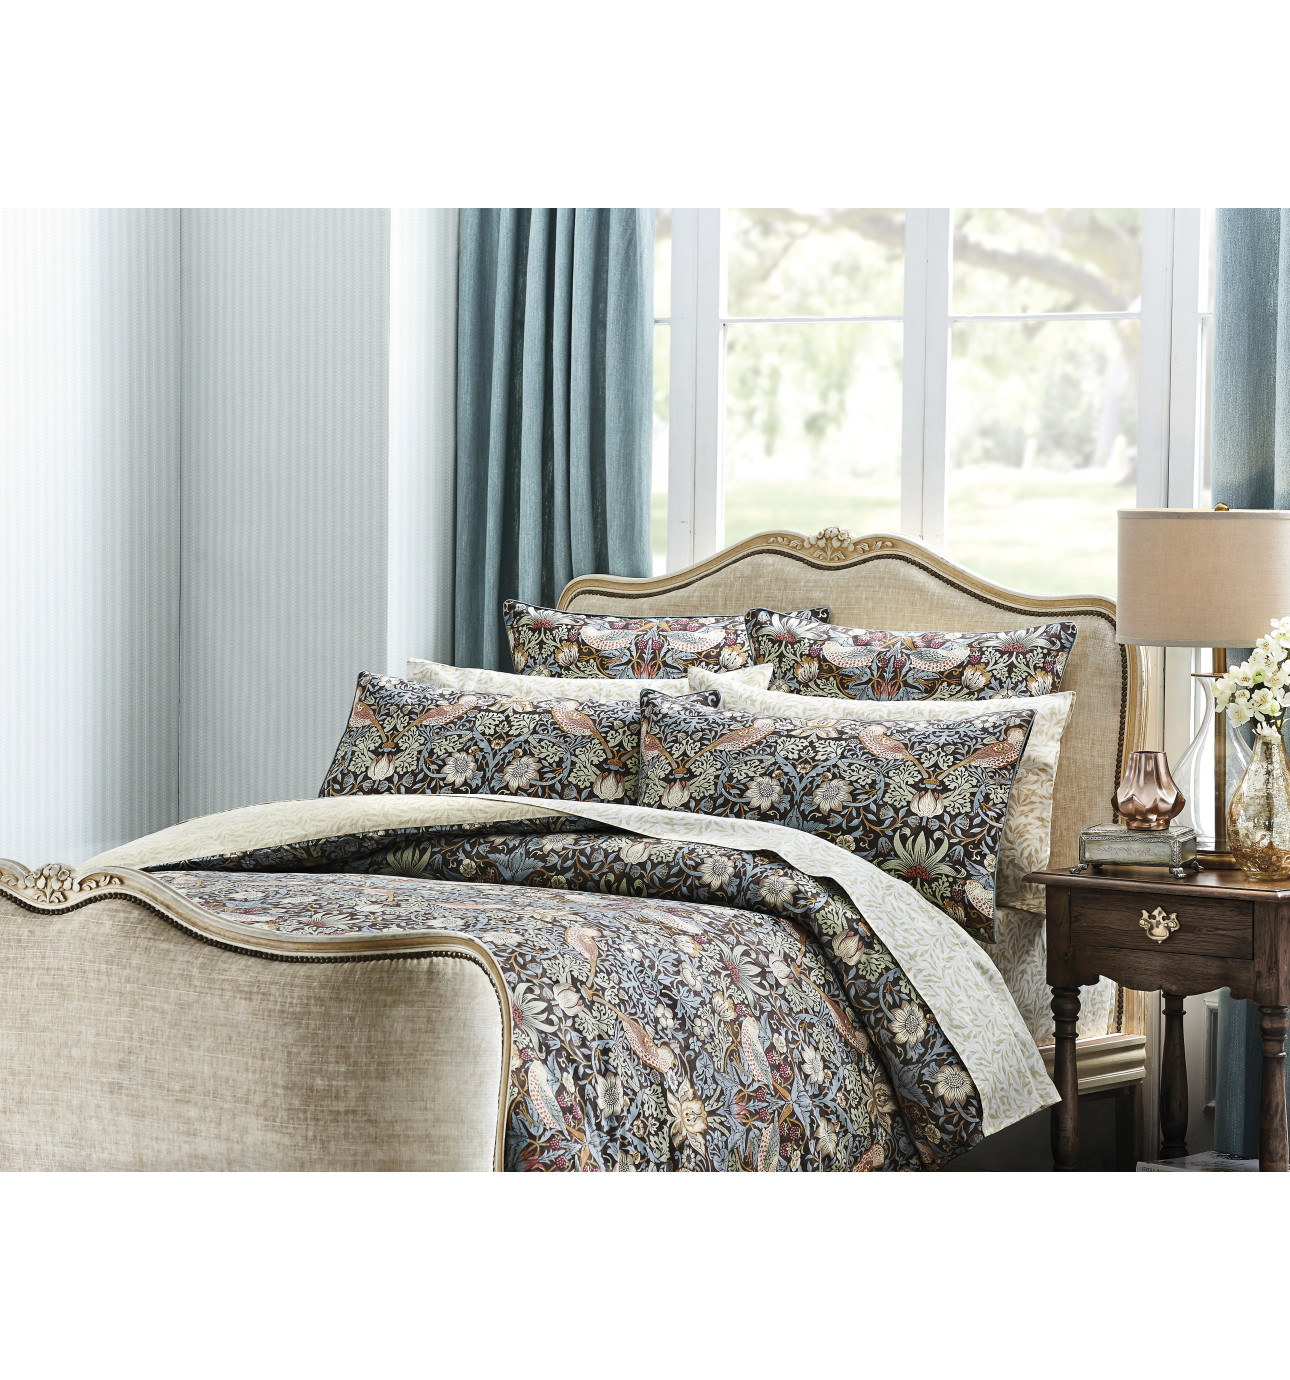 ANTHEA SINGLE BED QUILT COVER | David Jones : quilt cover sets david jones - Adamdwight.com